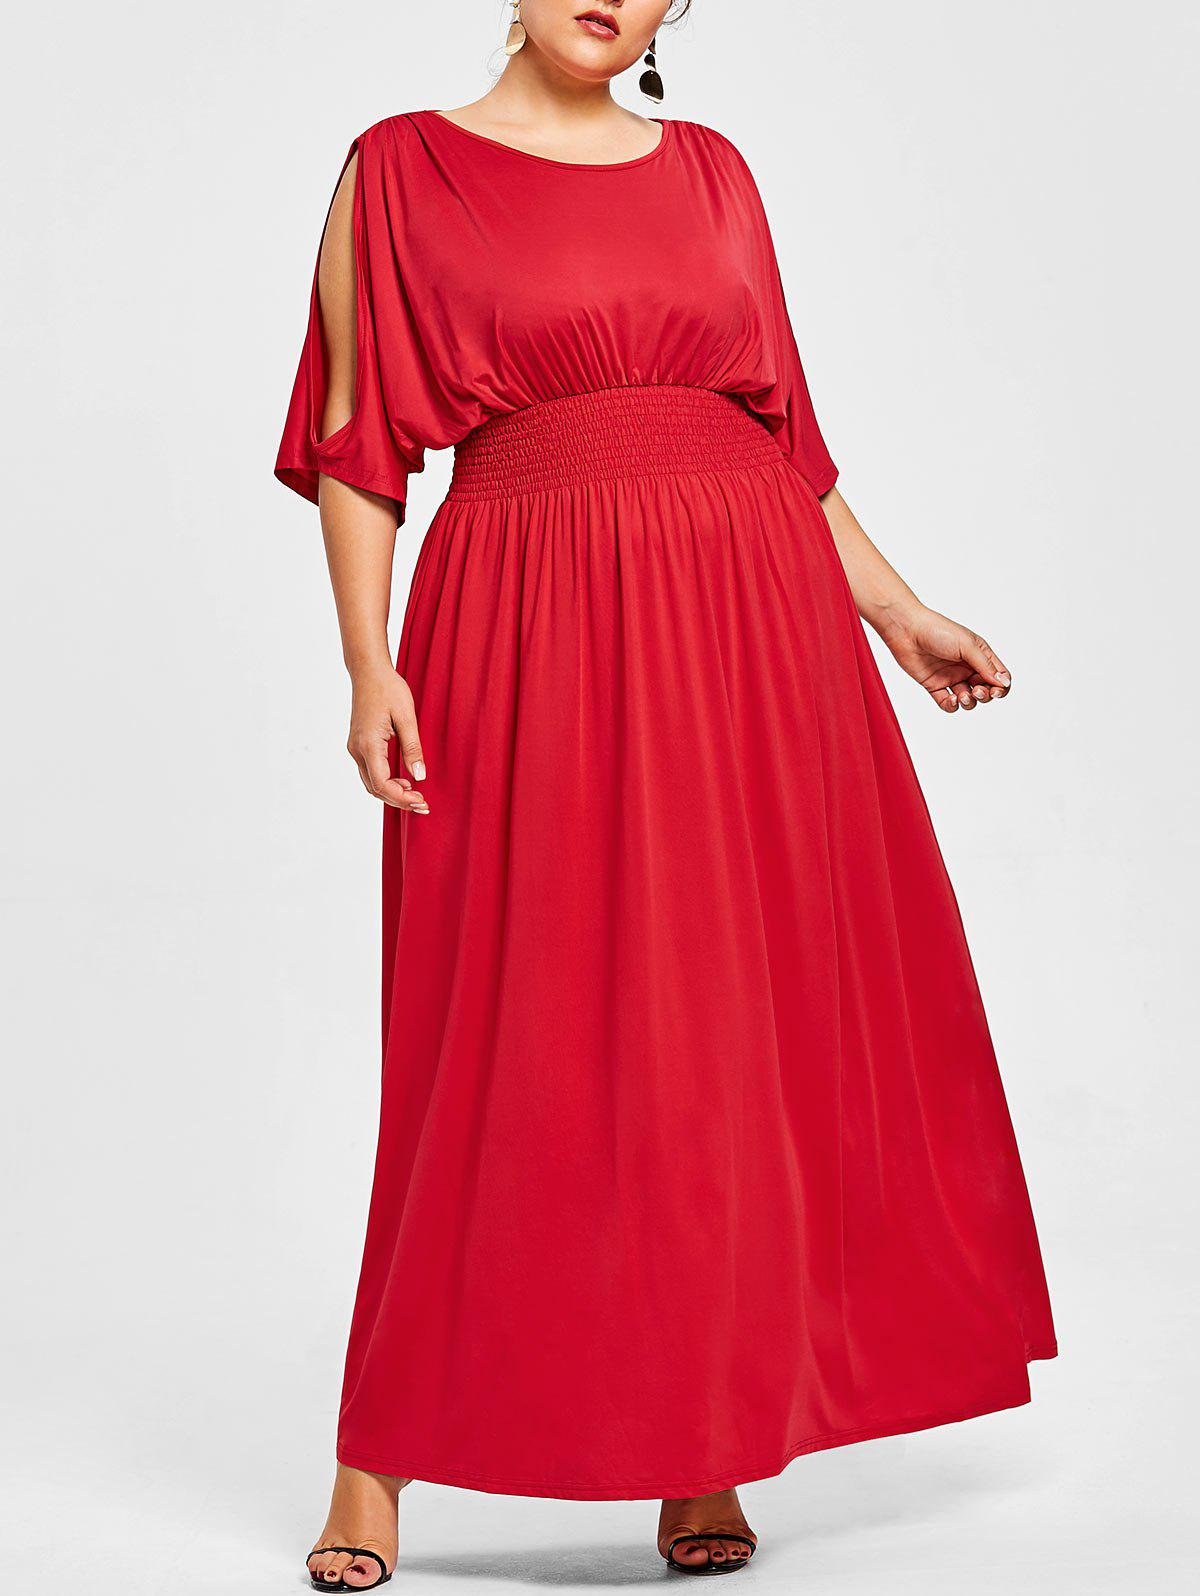 Slit Sleeve Plus Size Elastic Waist Maxi Dress - RED 3X